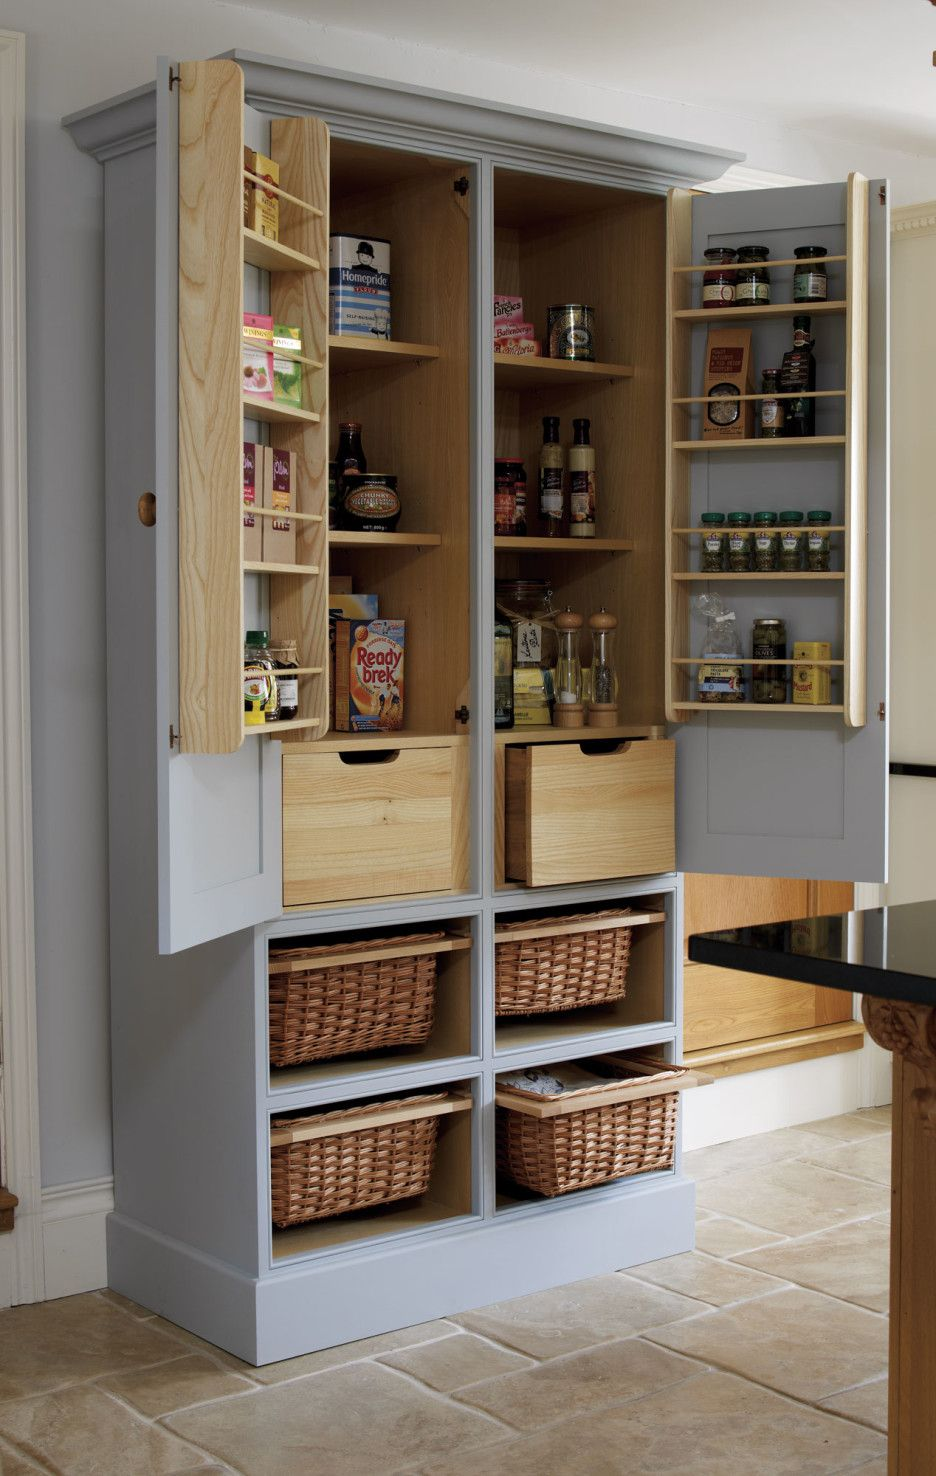 Attirant Furniture. Stand Alone Light Gray Wooden Pantry Cabinet With Open Shelves  And Inside Pull Out Drawers. Amusing Free Standing Corner Pantry Cabinet  Ideas To ...